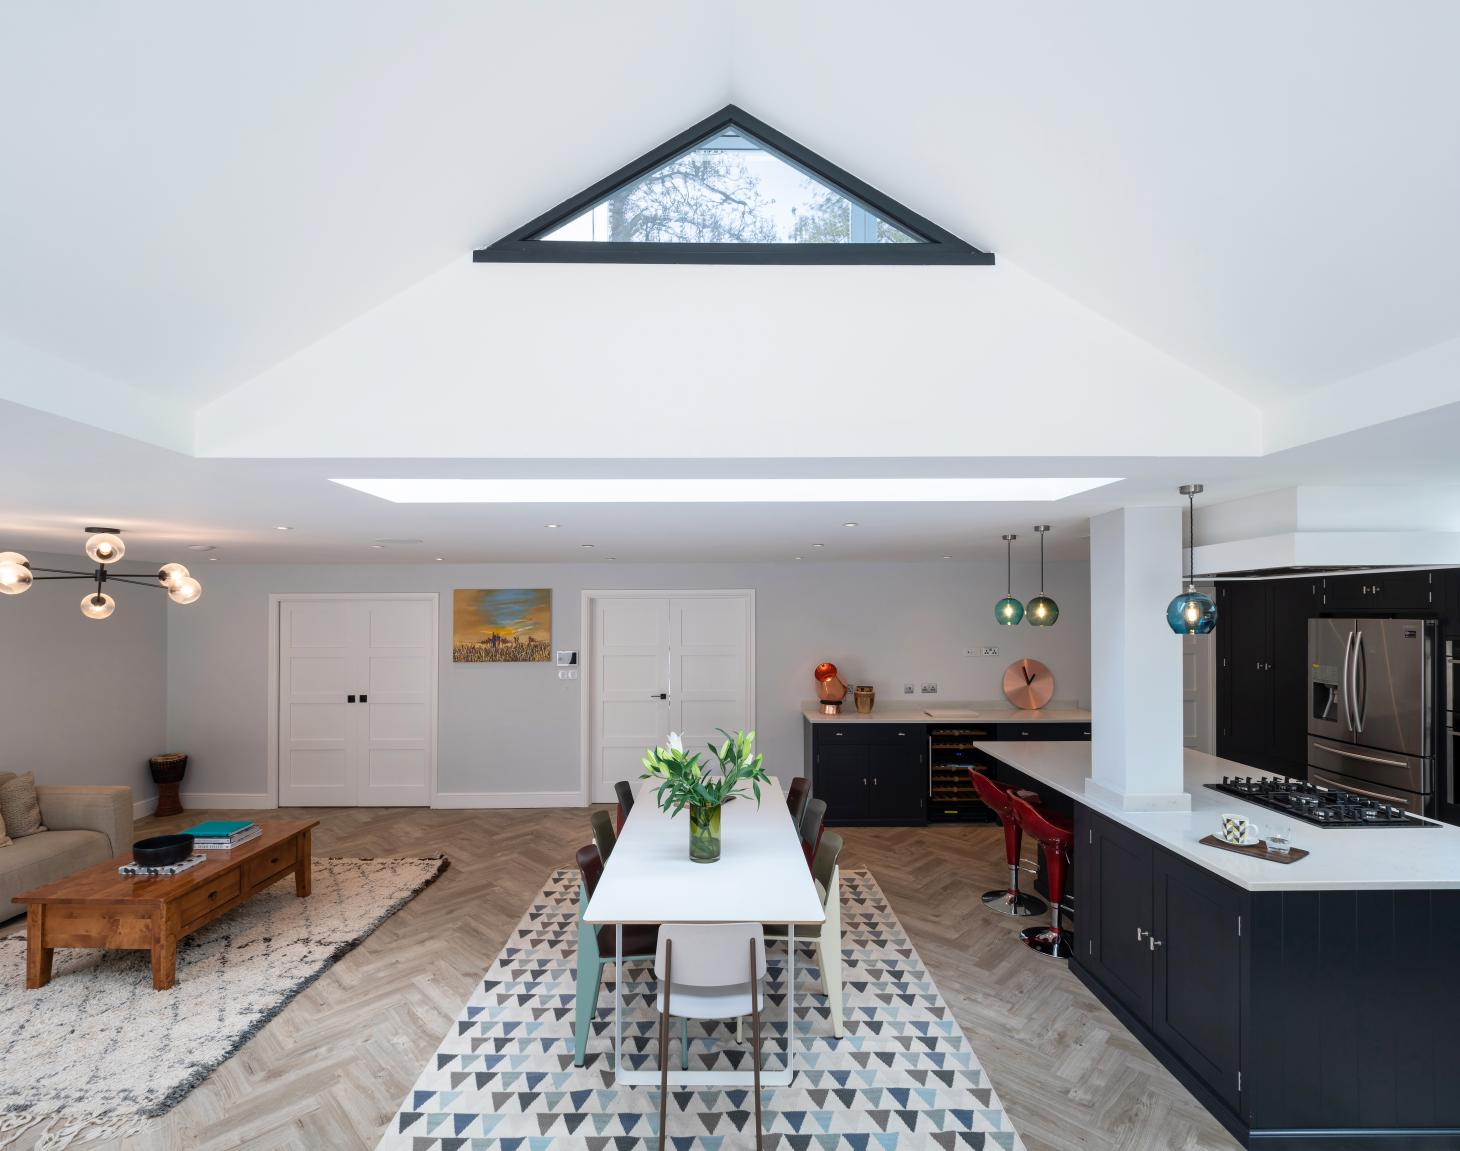 The Timber House's main living space and dramatic roof structure